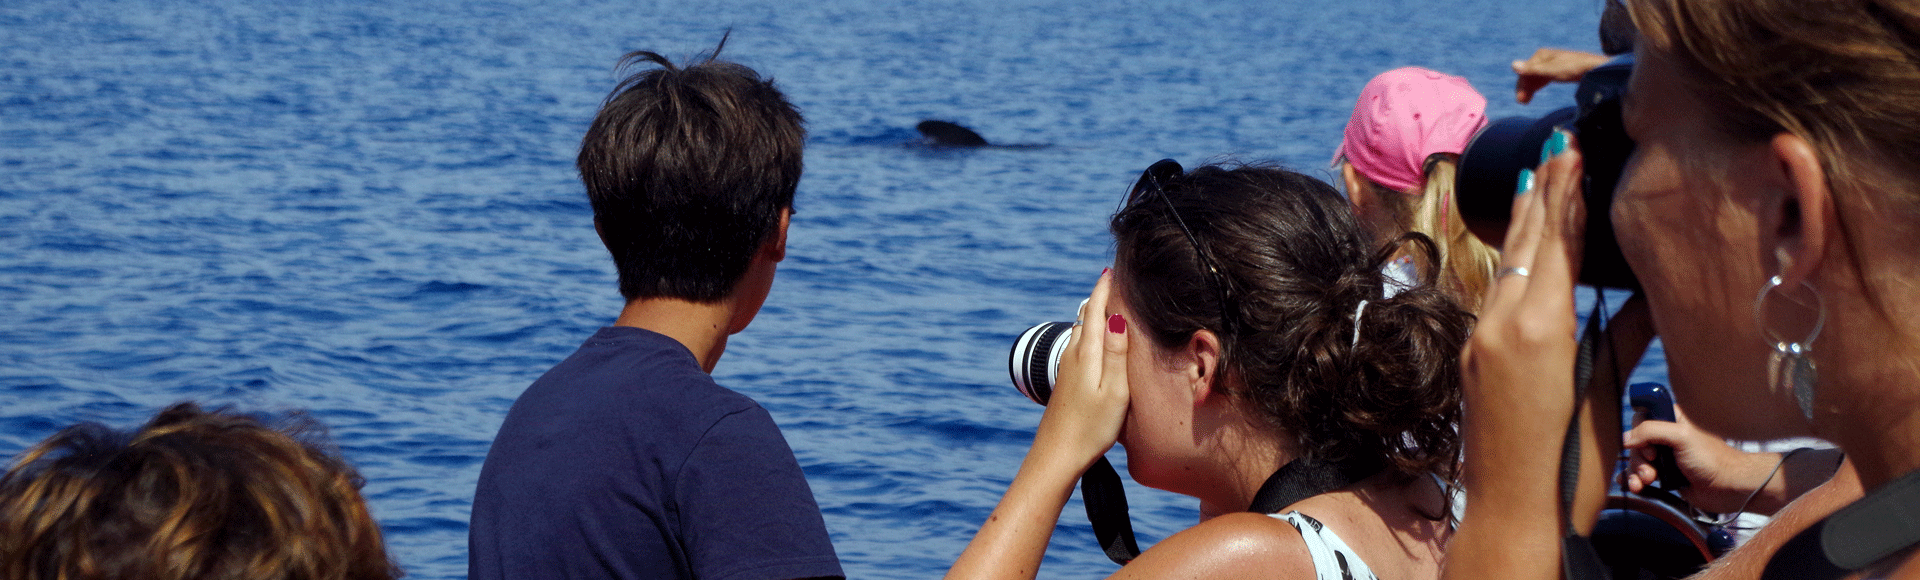 Whale watching 25 & 26 may